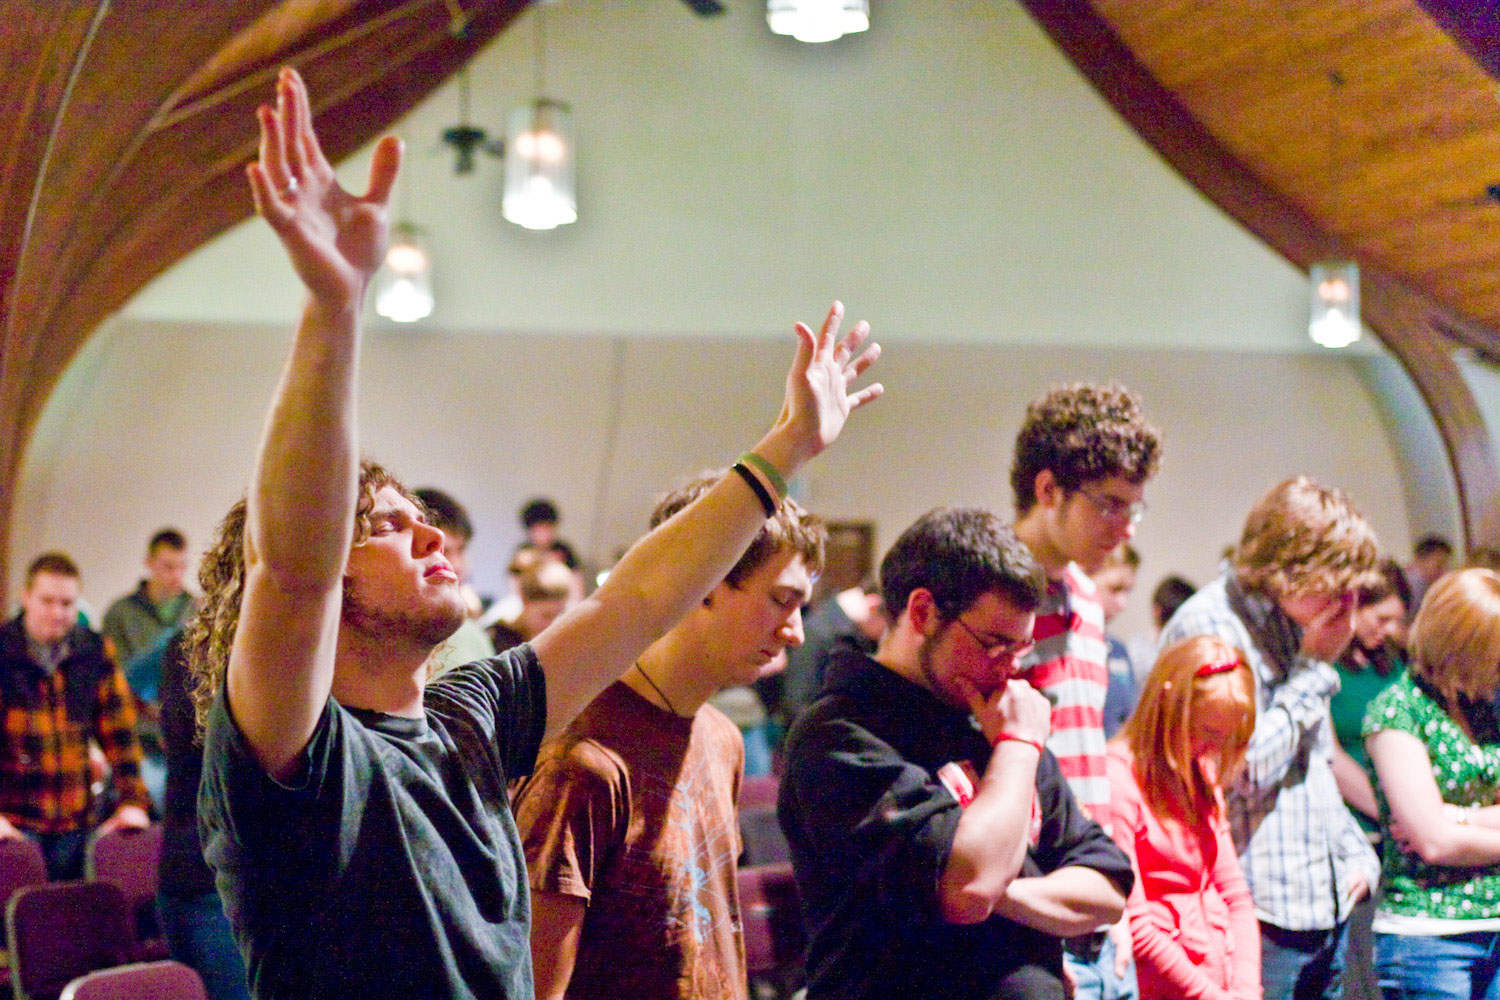 Man raises hand while others pray at the Red Sea Church in St. Johns Oregon